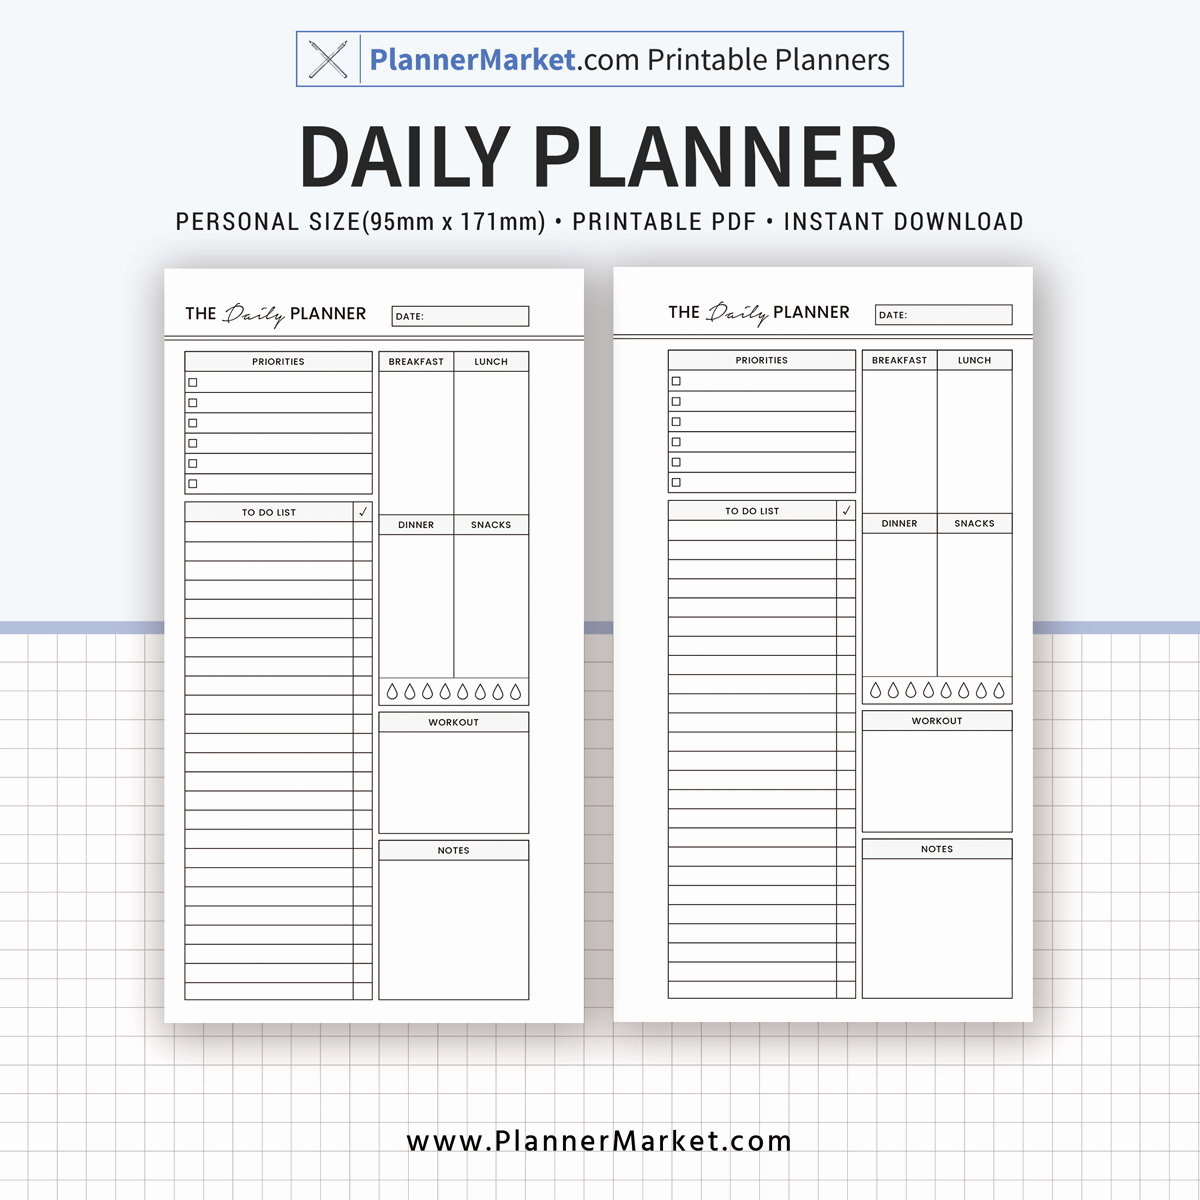 Printable Daily Planner 2019 Beautiful Free Printable Personal Planner Inserts 2019